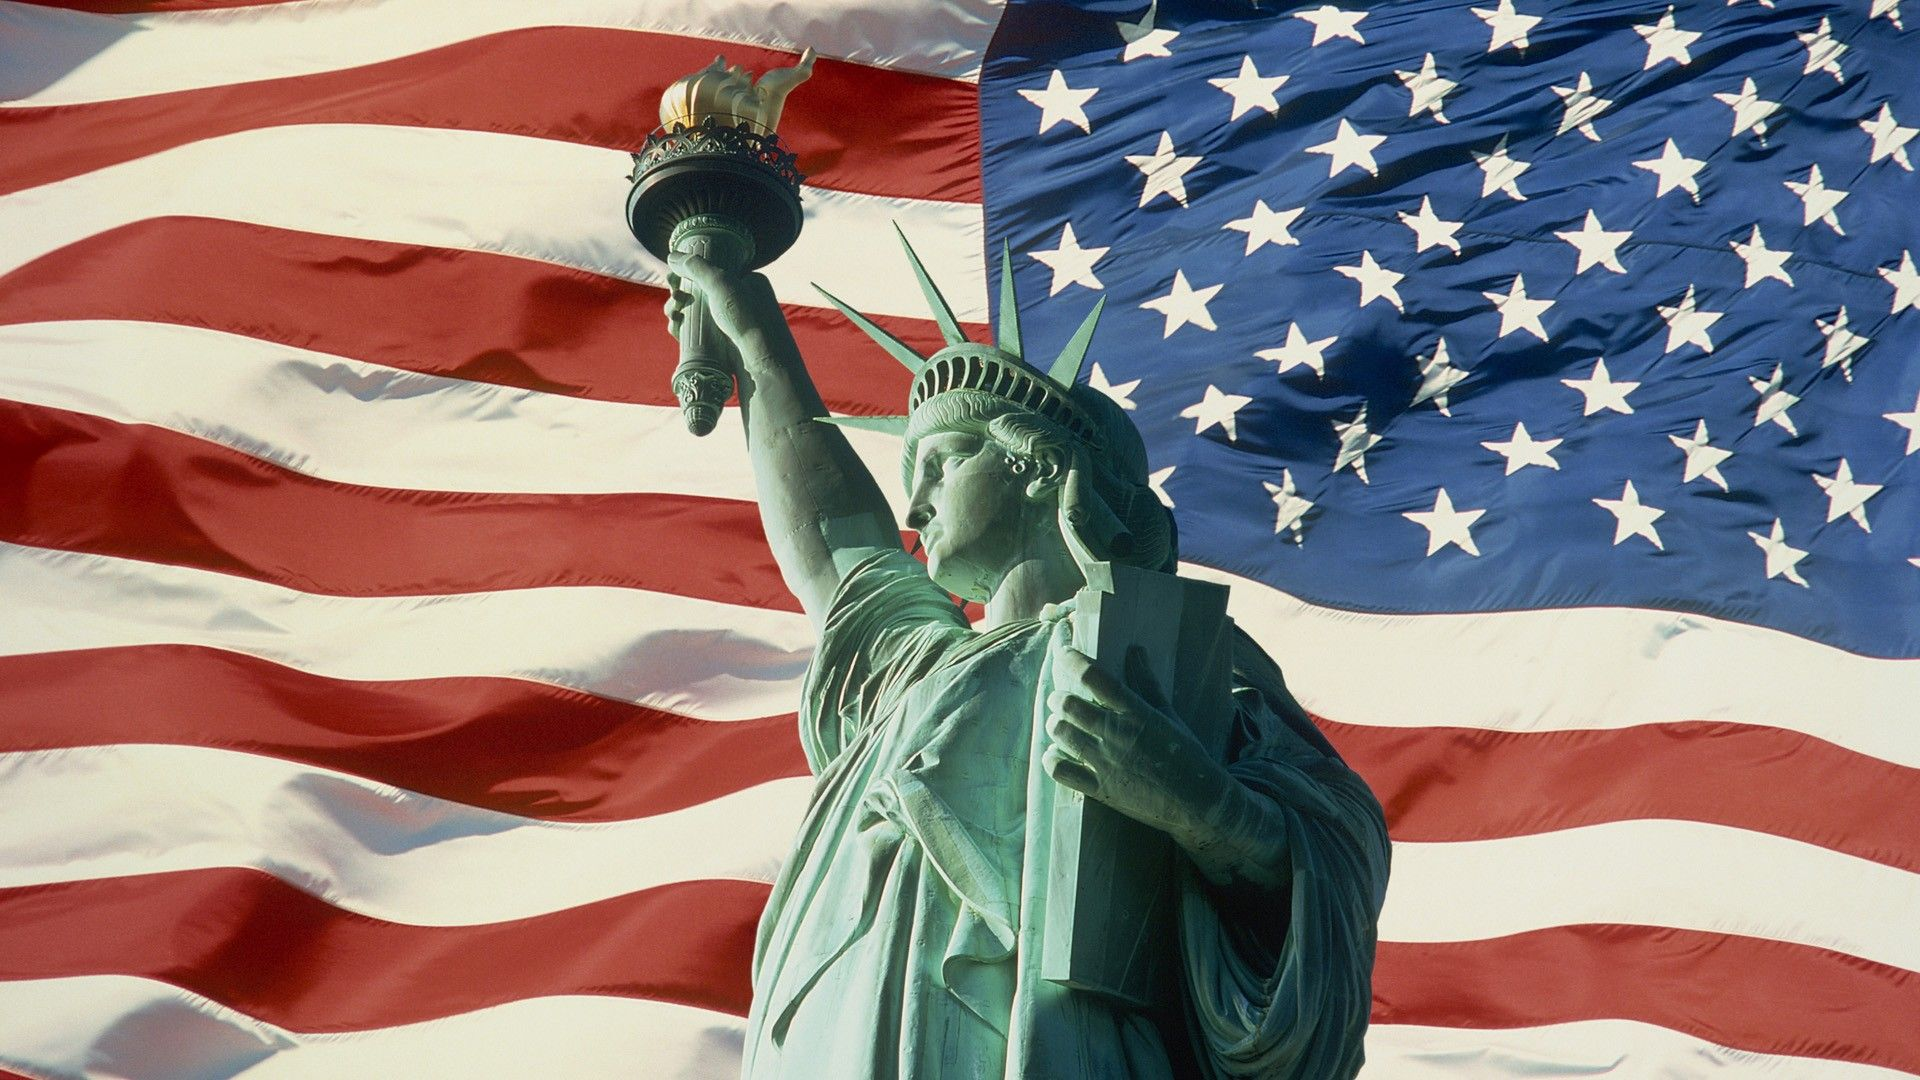 We make American flags in the USA! All of them. All the time @ www.usflagstore.com/category/us-flags